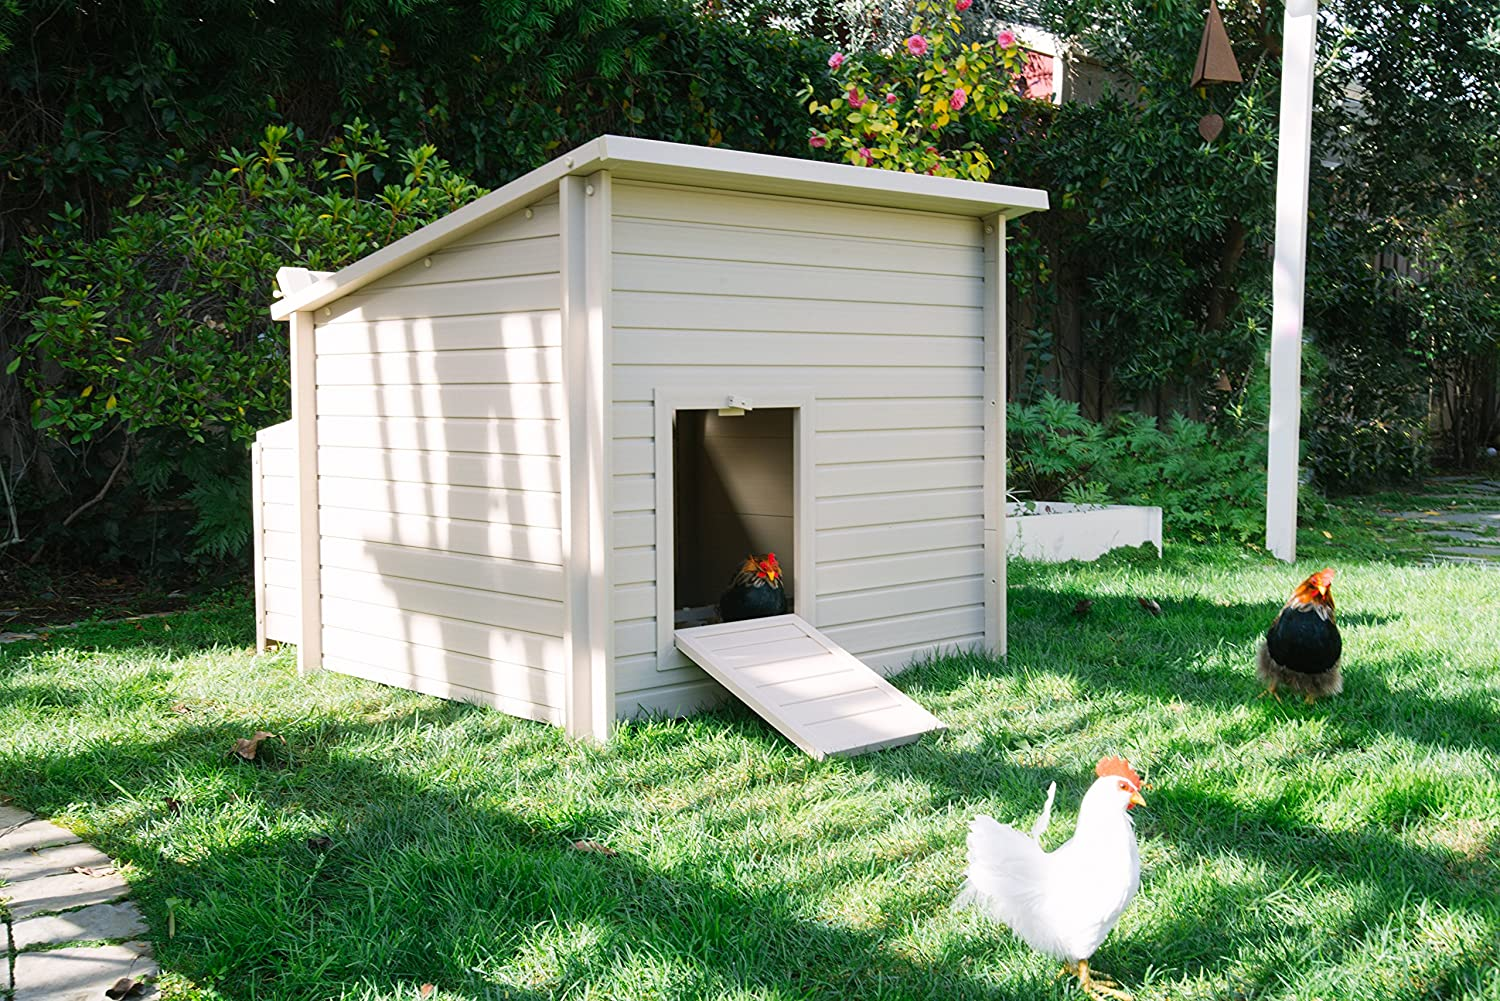 best chicken coop 2017 the top 5 choices for chicken farmers